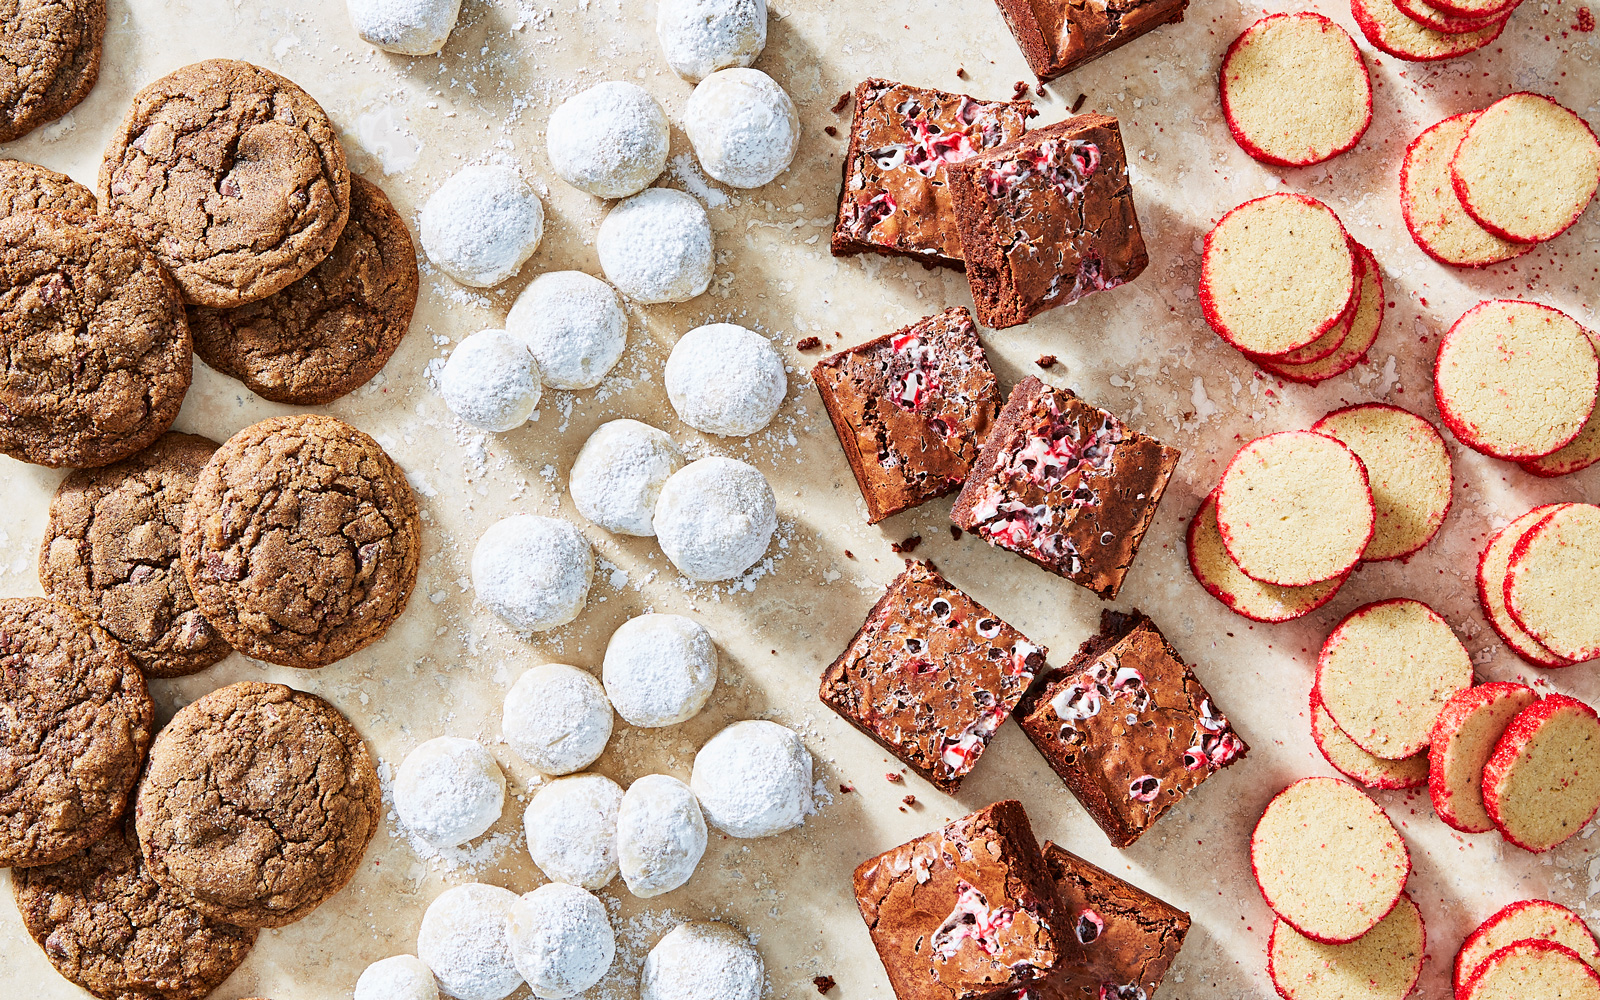 Martha Bakes Cookiesmideastern Cookies: Martha Stewart Has A New Holiday Cookie Box To Make Your